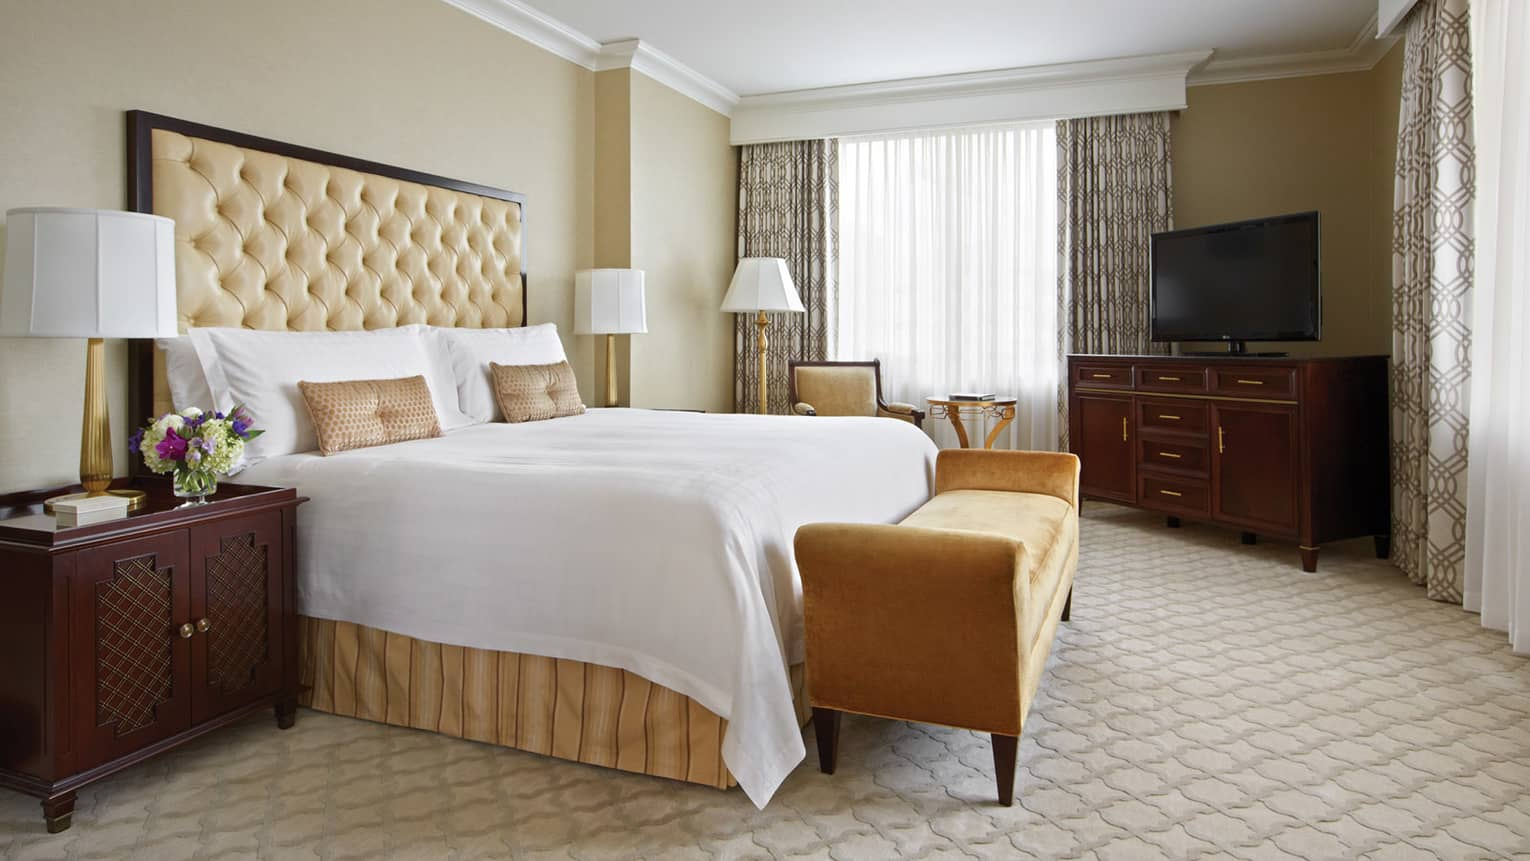 Two bedroom hotel suite in atlanta luxury hotel four - Hotels that have 2 bedroom suites ...